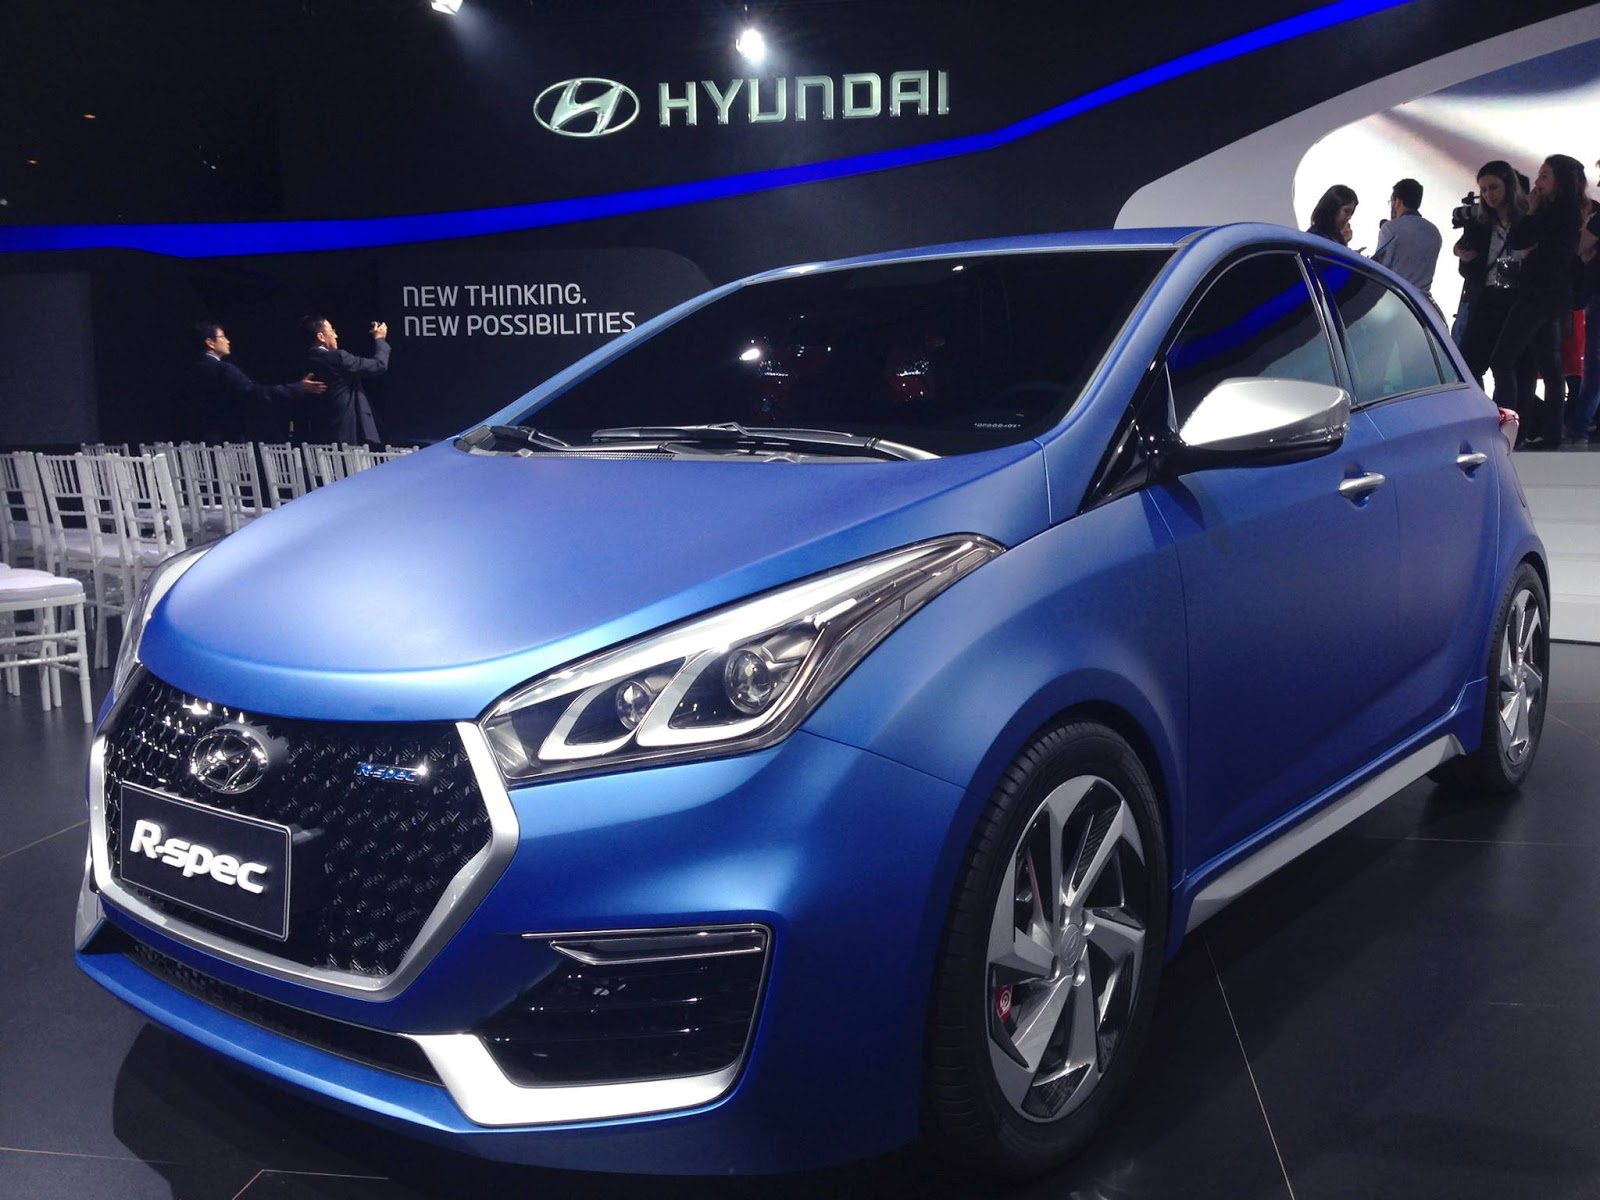 hyundai debuts hb20 rspec concept sporty hatch at sao